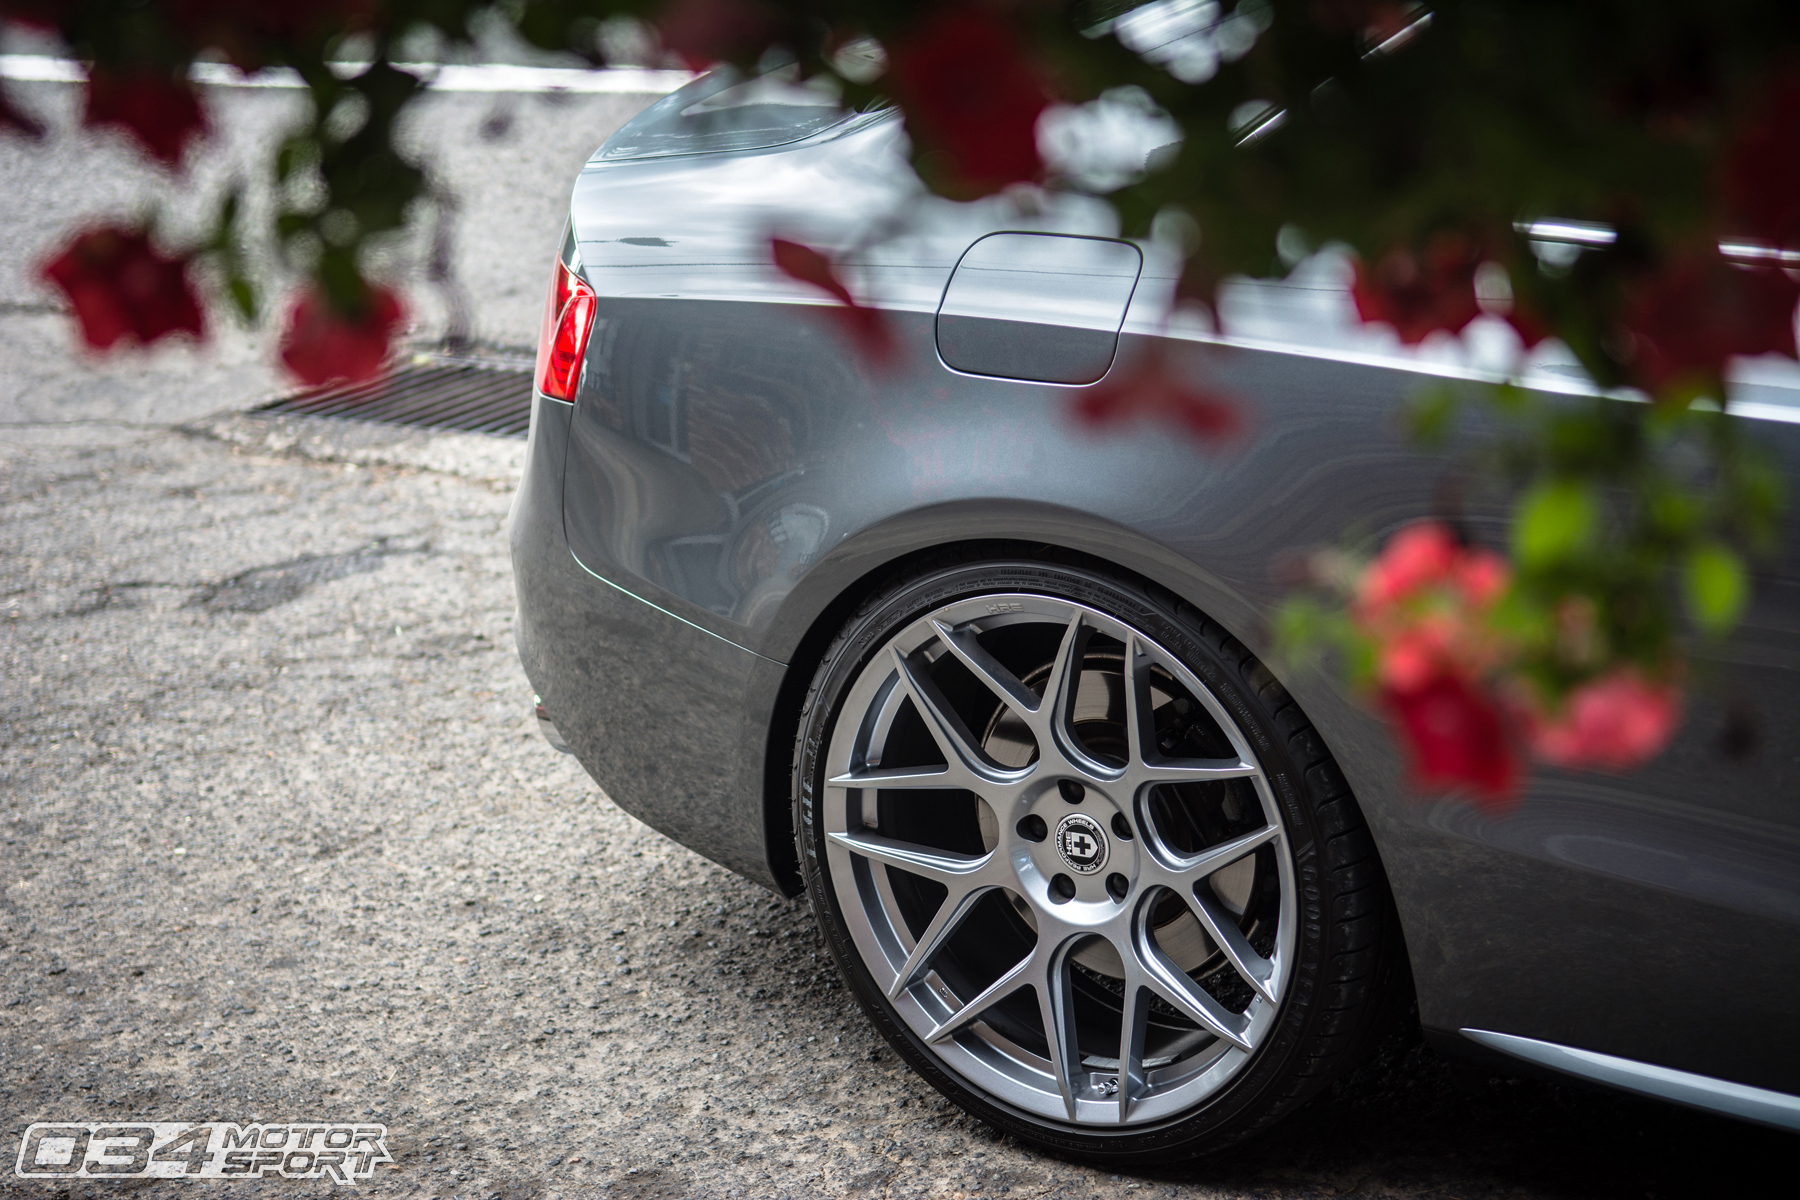 Lowered Monsoon Gray B8.5 Audi S5 on HRE FF01 FlowForm Wheels